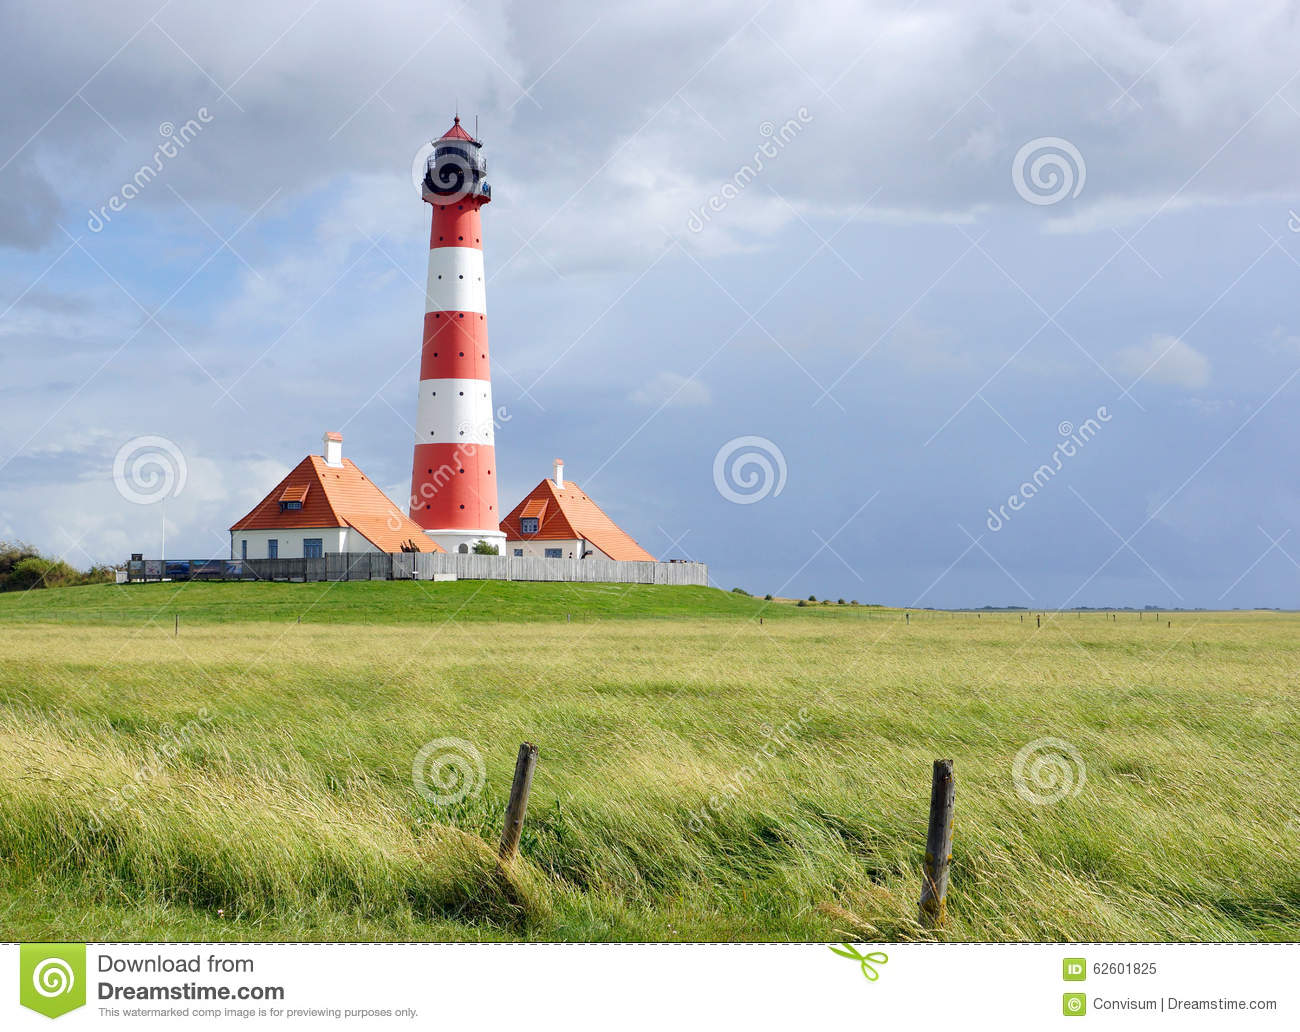 Famous Lighthouse In Westerhever, Germany Stock Photo.